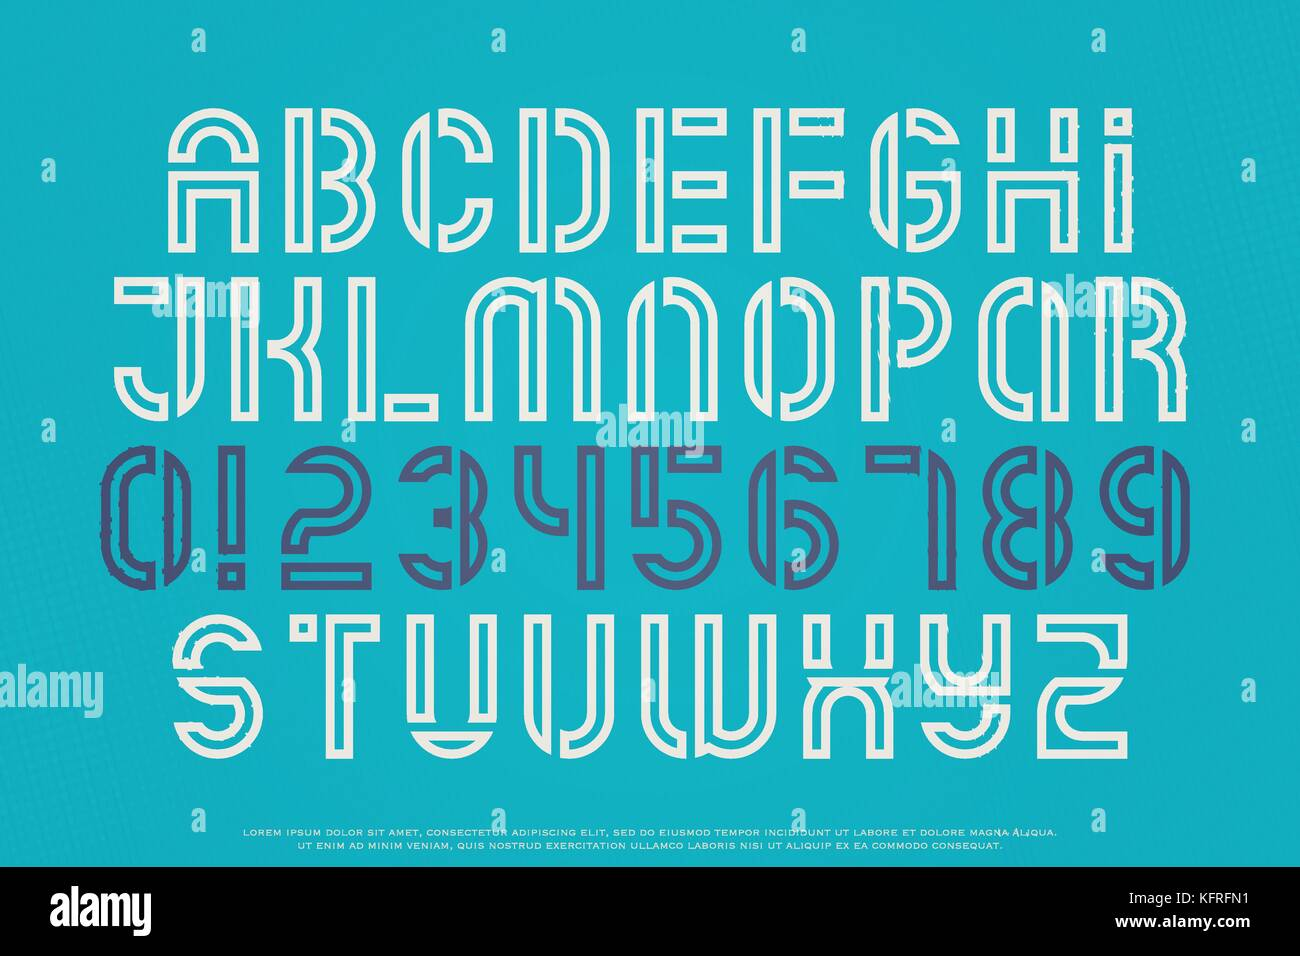 Stencil Alphabet Letters And Numbers Vector Outline Font Type Regular Typeface Design Medium Contour Typesetting